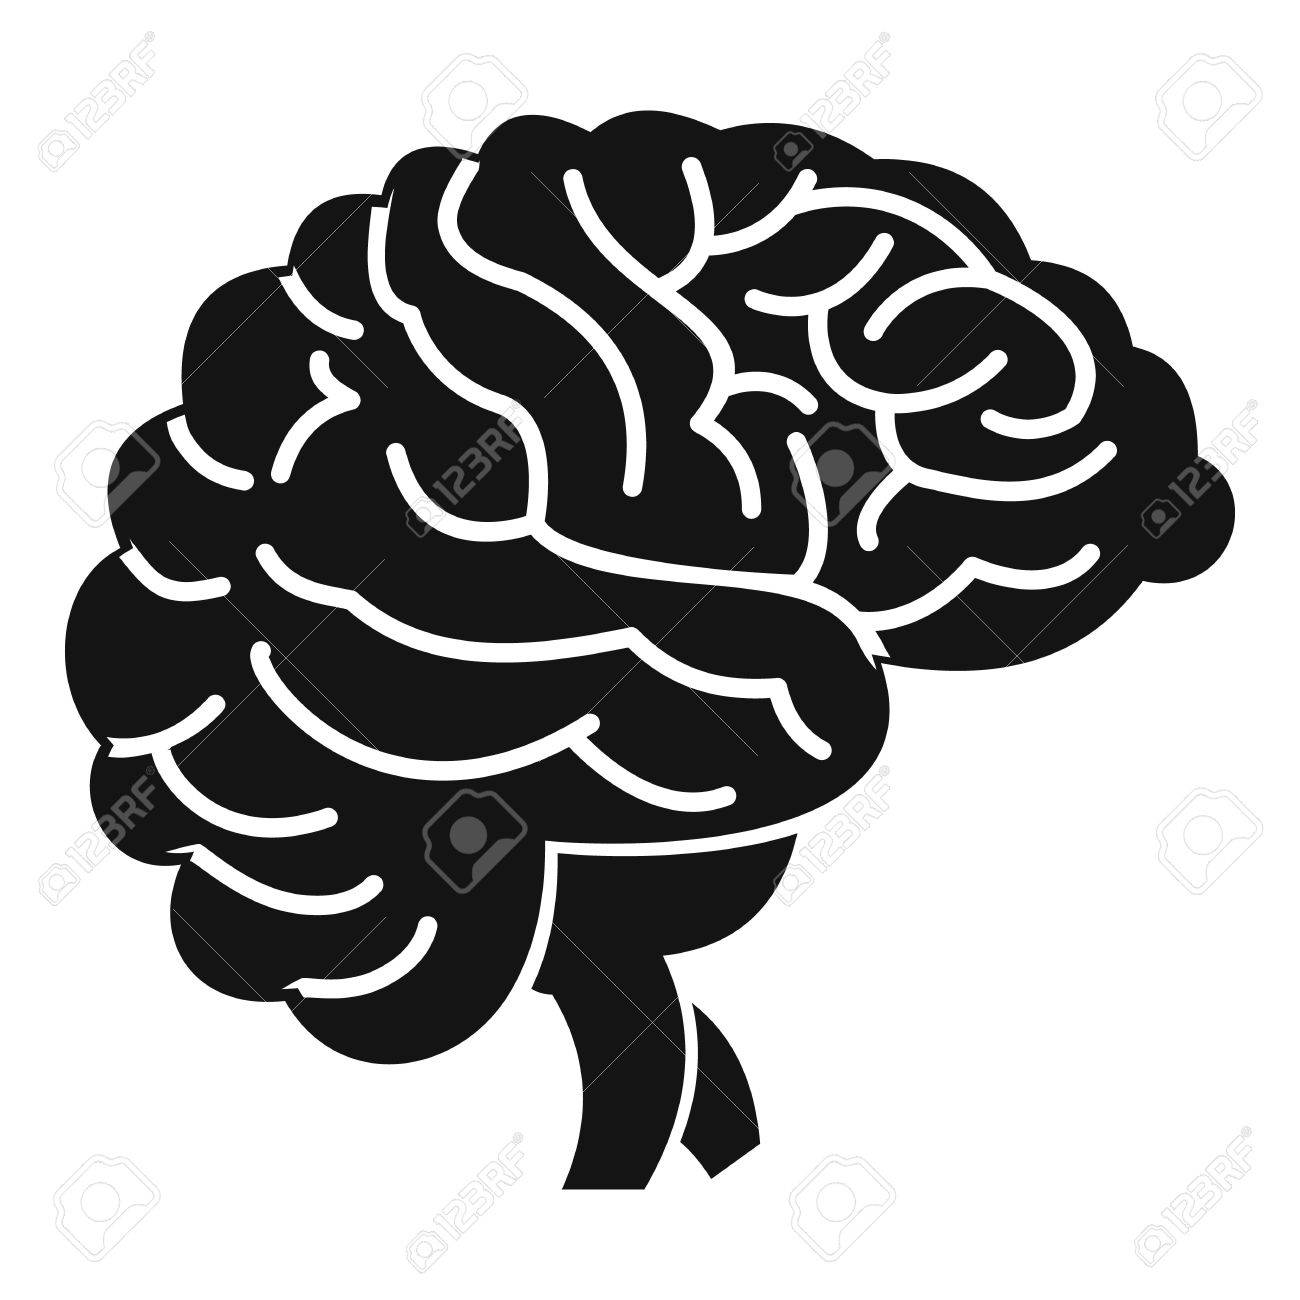 brain icon simple illustration of brain vector icon for web royalty rh 123rf com brain vector file brain vector art free